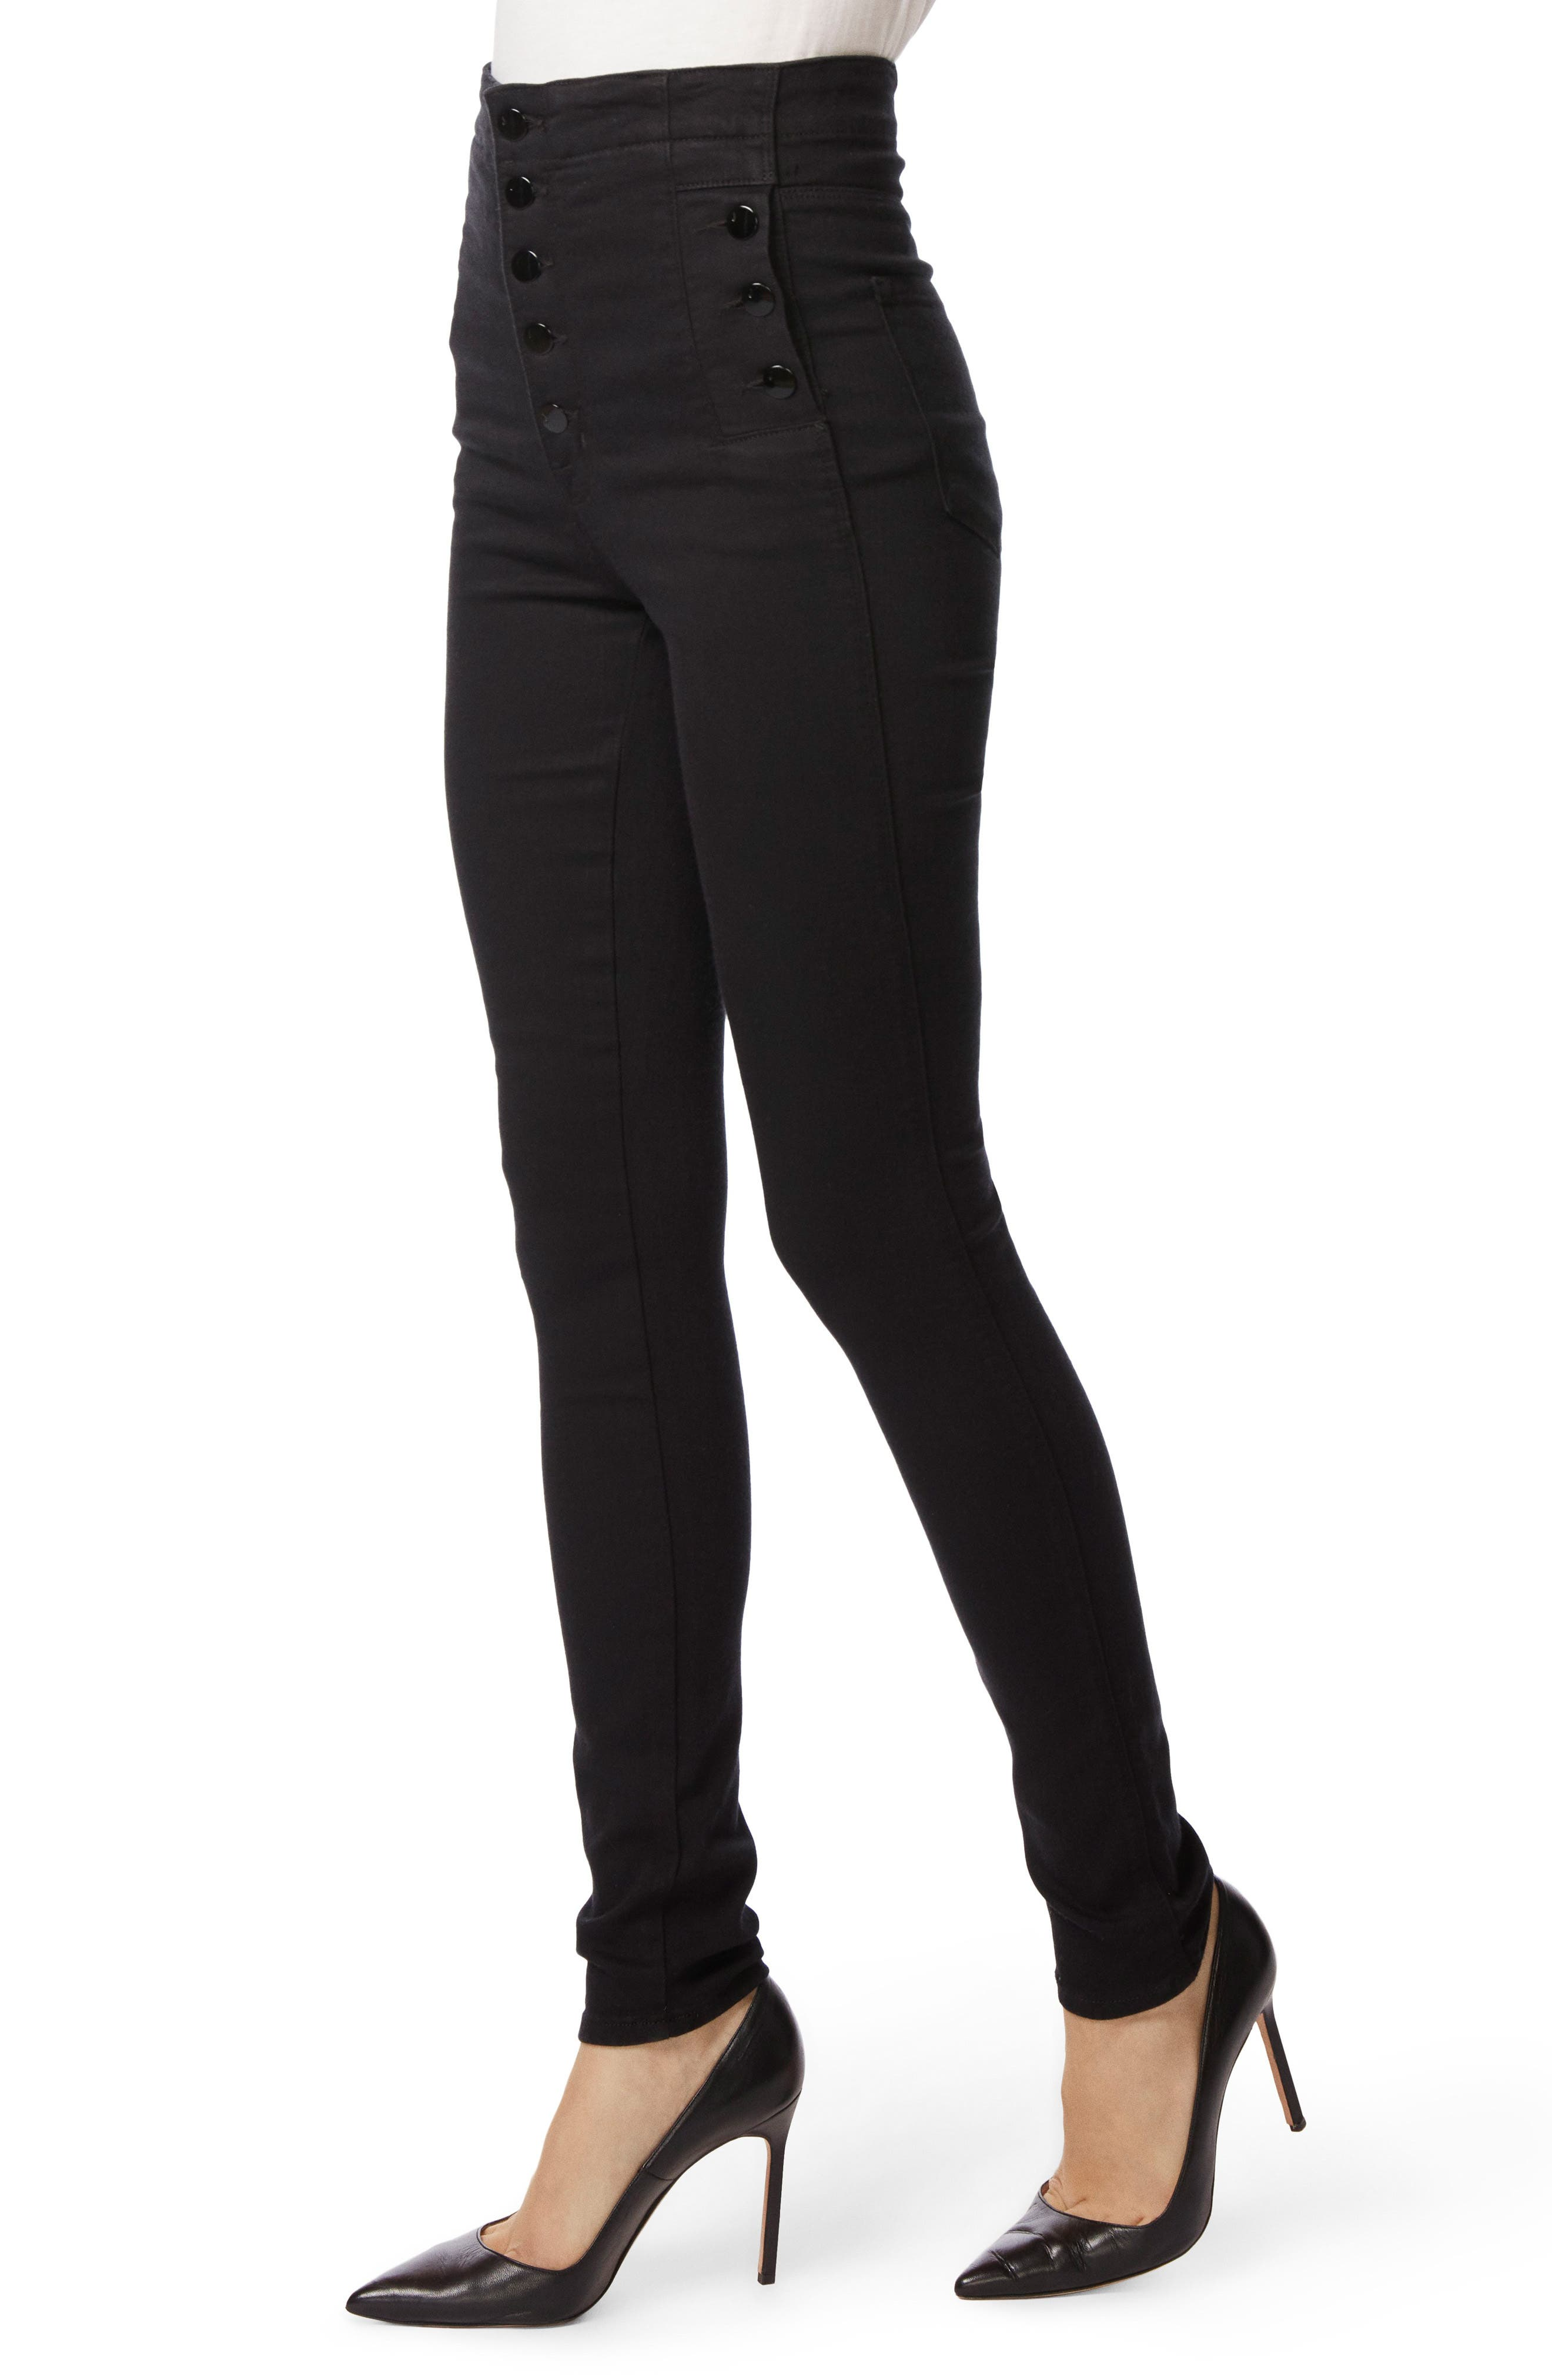 Natasha Sky High High Waist Super Skinny Jeans,                             Alternate thumbnail 4, color,                             Seriously Black